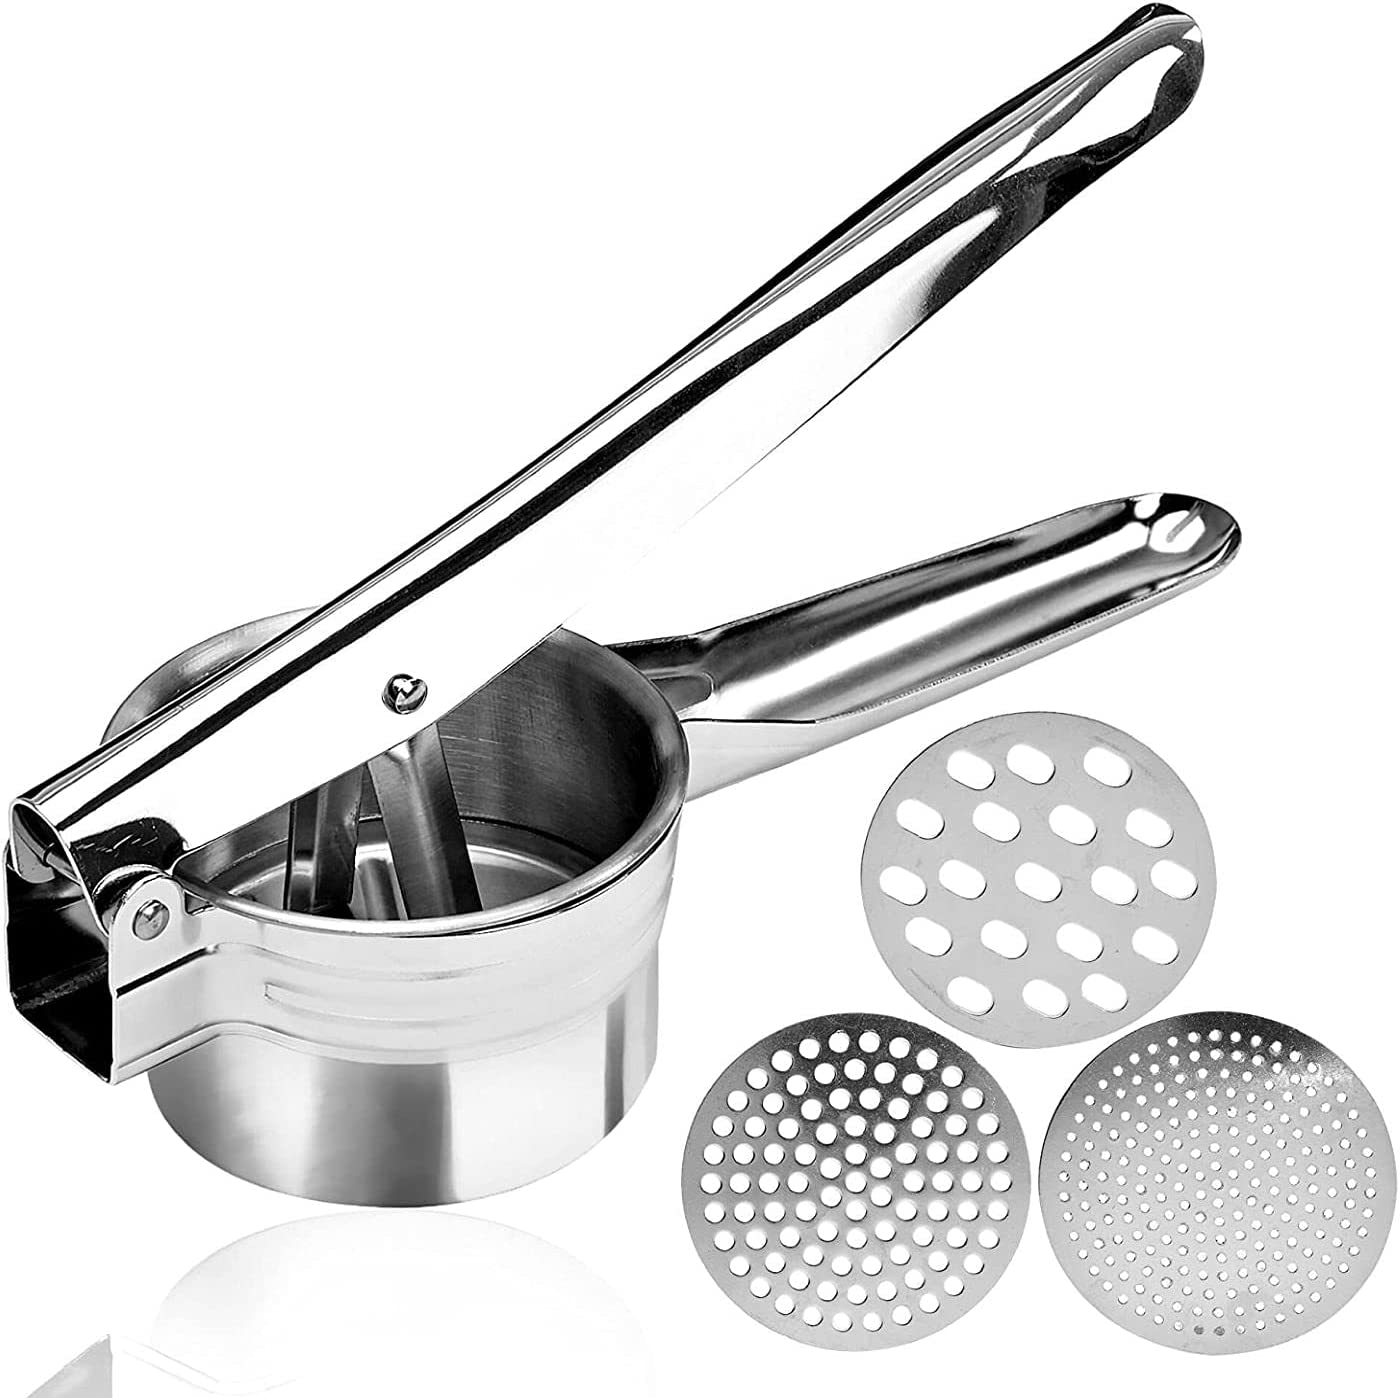 Potato Ricer Stainless Store Steel Manual 35% OFF Masher Potatoes for Fruits